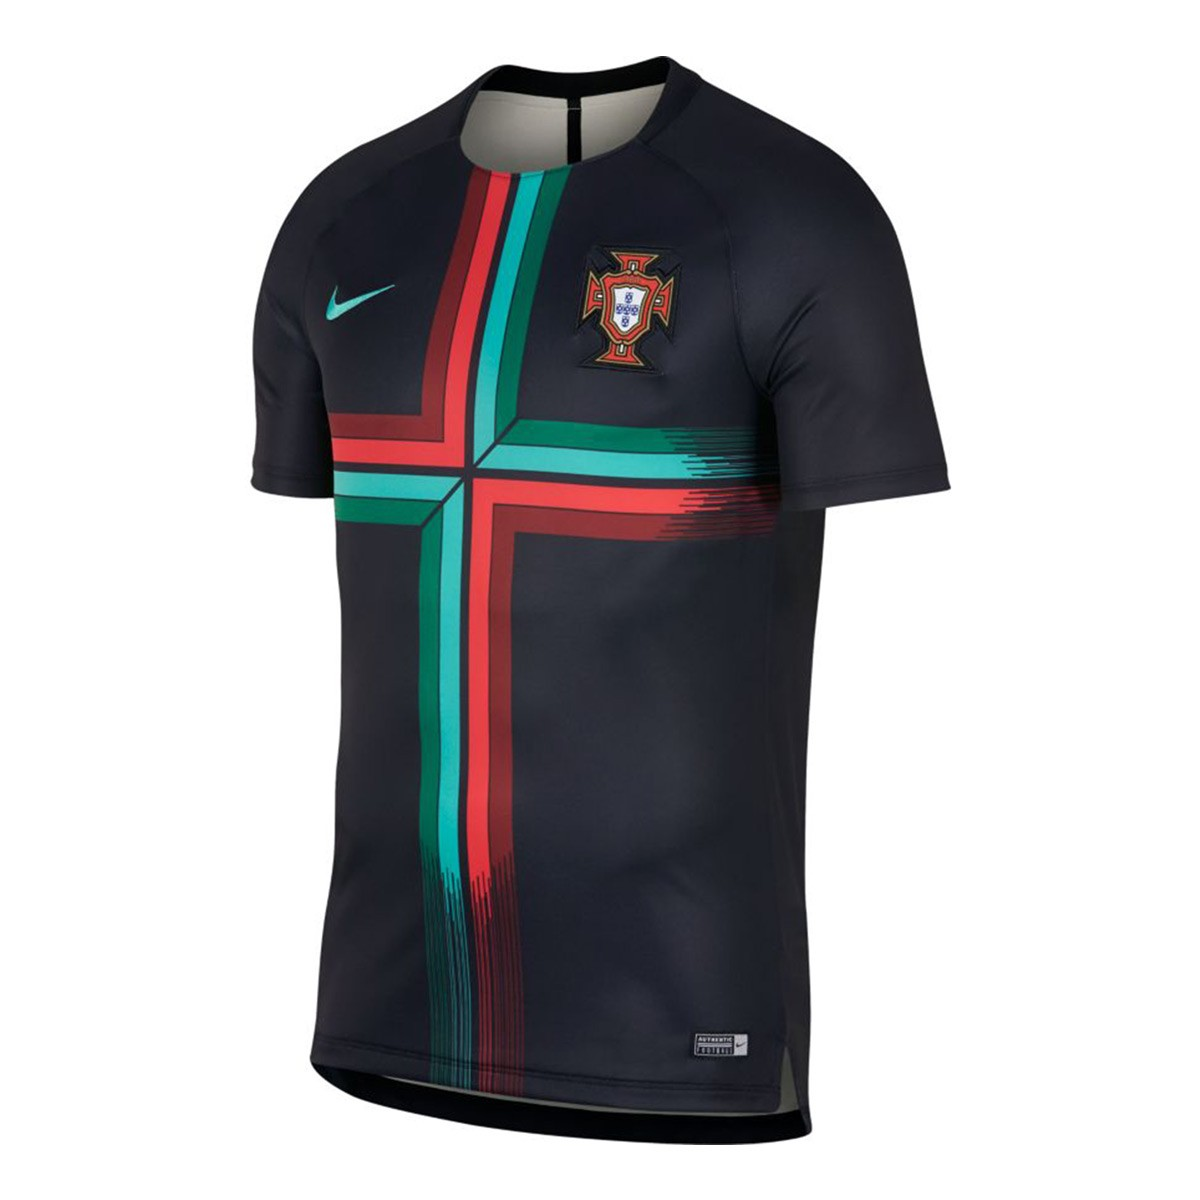 Playera nike portugal dry squad gx 2017 2018 black kinetic - Comprar ropa en portugal ...